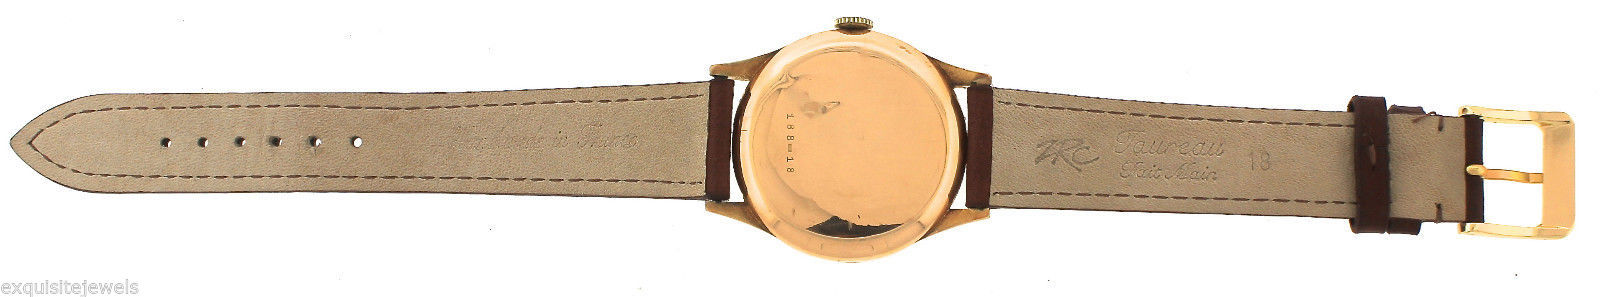 Men's Vintage Charles Nicolet Tramelan 188-18 15-Jewel 18K Rose Gold Watch